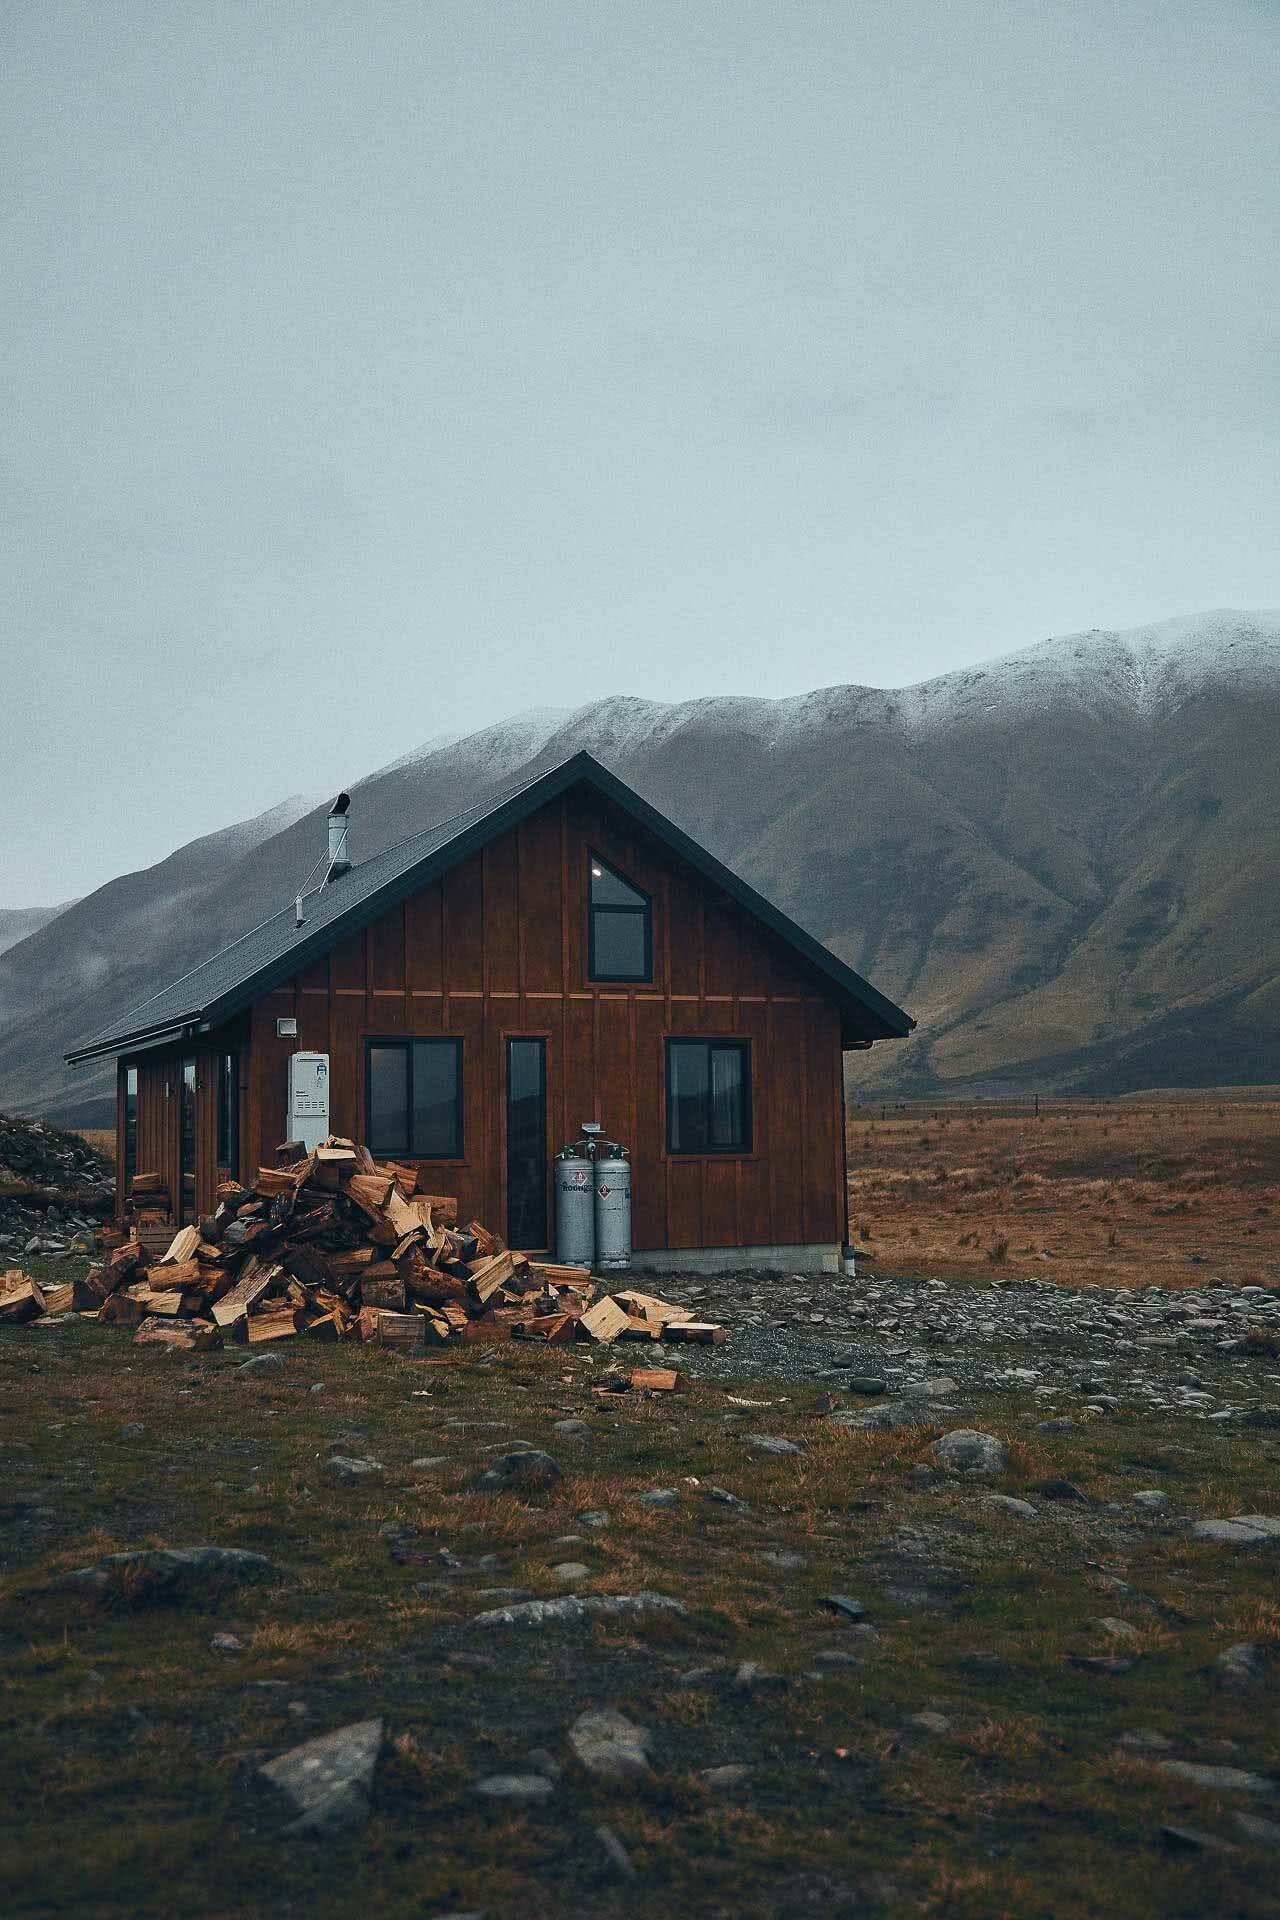 This High Country Cabin Offers the Wild Isolation We All Need Right Now, photo by Kenny Smith, cabin, isolation, twizel, south island, new zealand, firewood